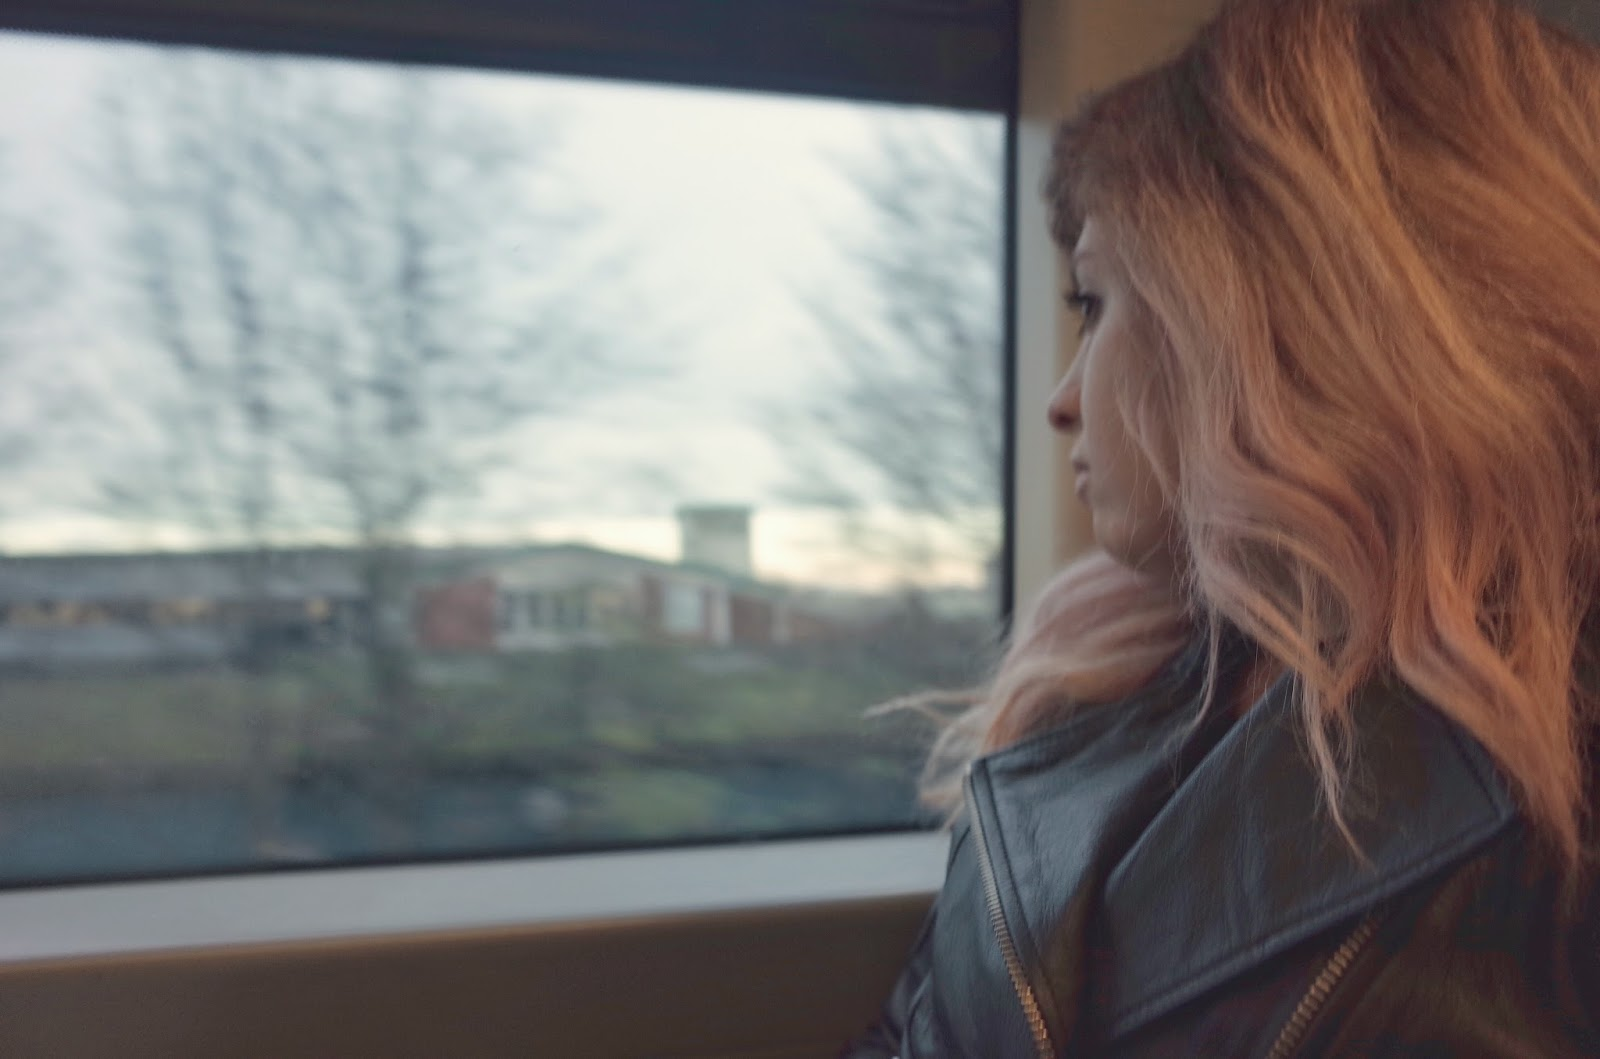 blogger francesca sophia from francescasophia.co.uk stares out of a train window